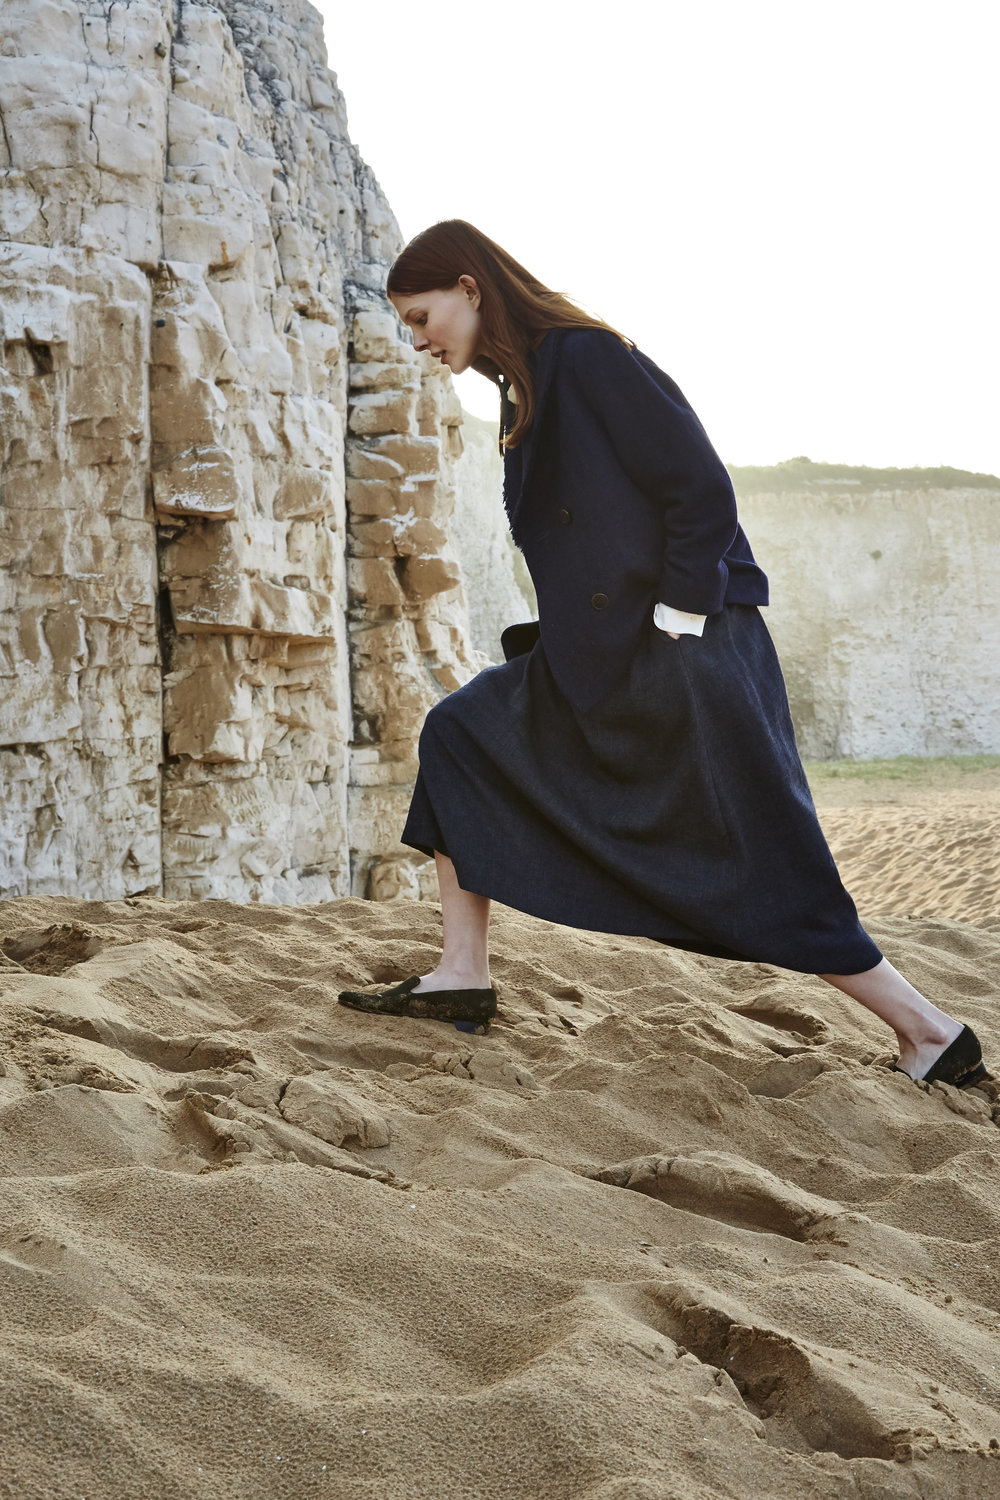 The Samuji 2017 Resort collection explored the idea of resort and the luxurious lifestyle associated with it. Väänänen proposed that a simpler life and reconnection to nature might in fact be the height of luxury in today's world. Finnish writer and artist Tove Jansson (1914-2001), with her ascetic summer cottage in the Gulf of Finland, was a role model. Photo: Aleksi Niemelä.